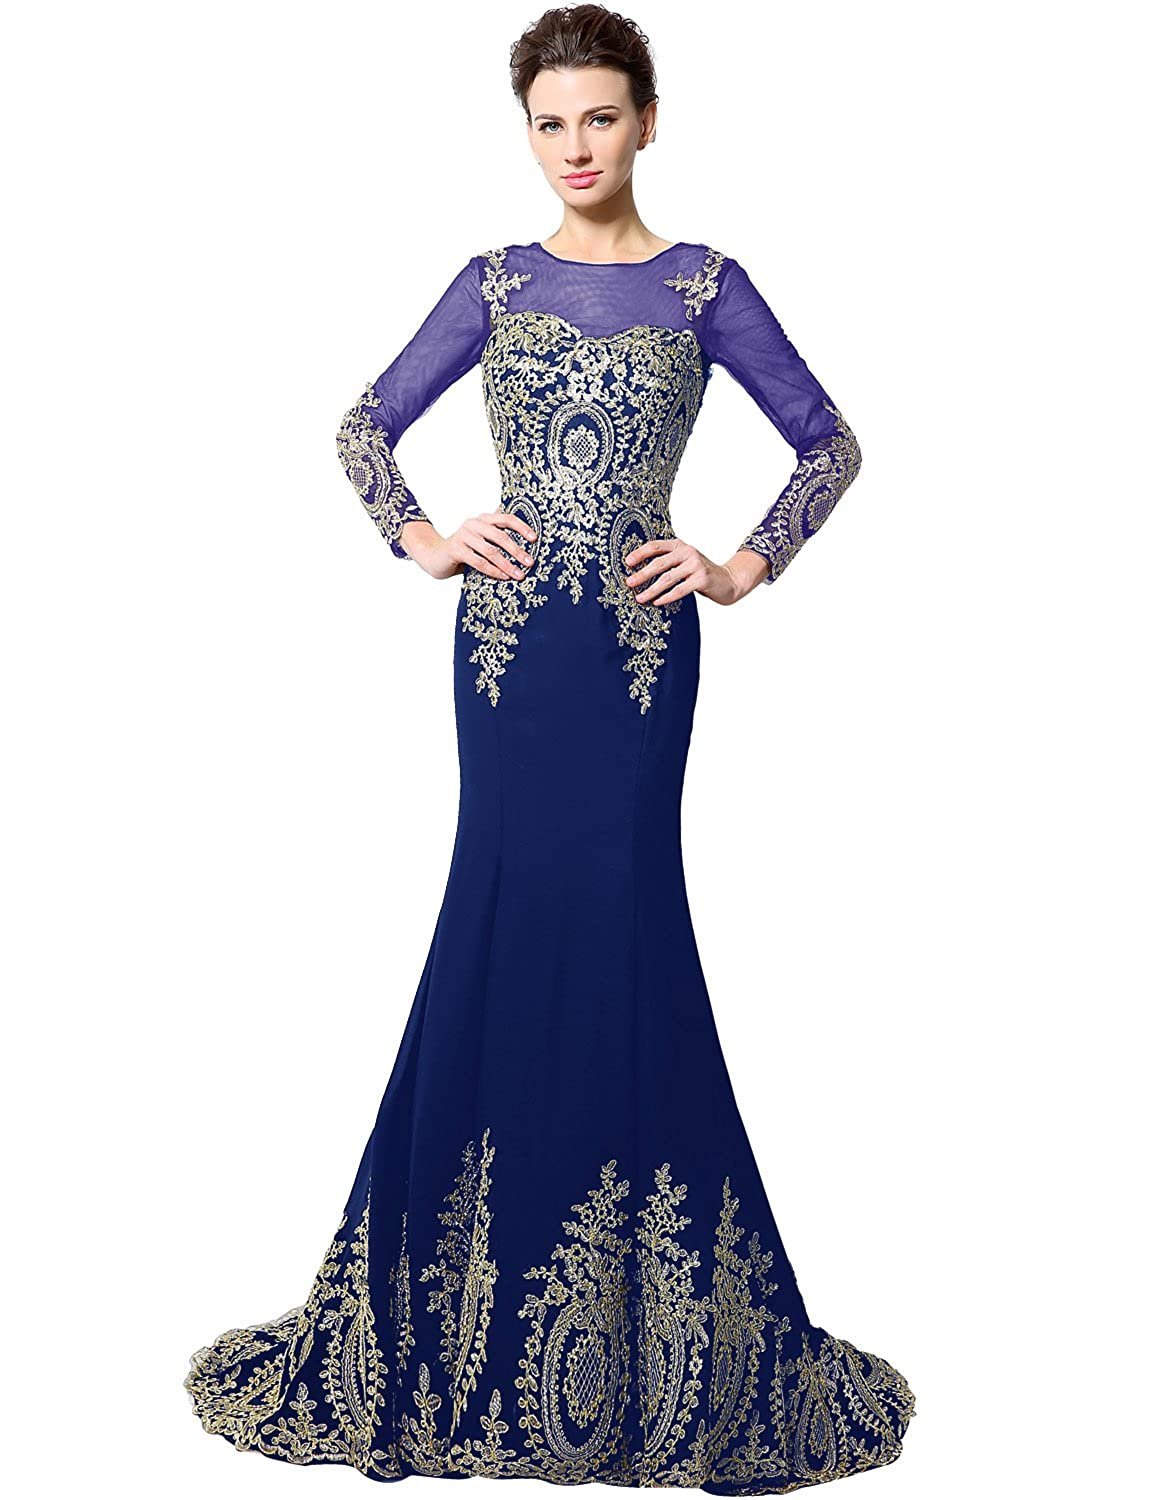 040royal bluee Sarahbridal Women's Mermaid Evening Ball Dress 2019 Formal Long Prom Gowns